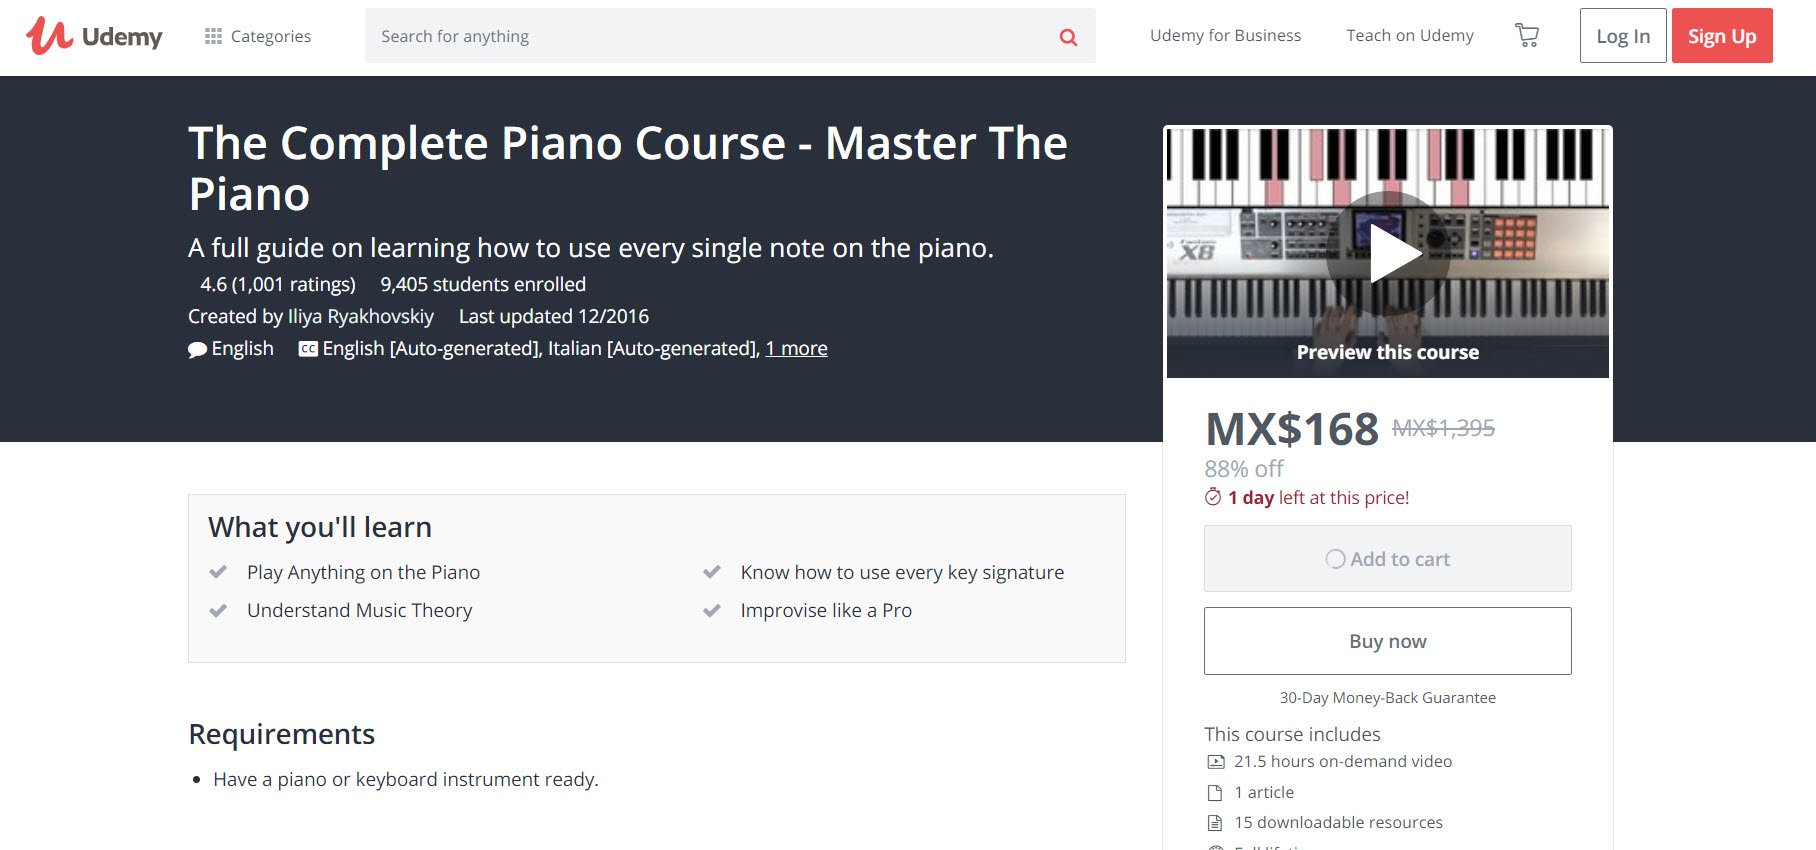 The Complete Piano Course